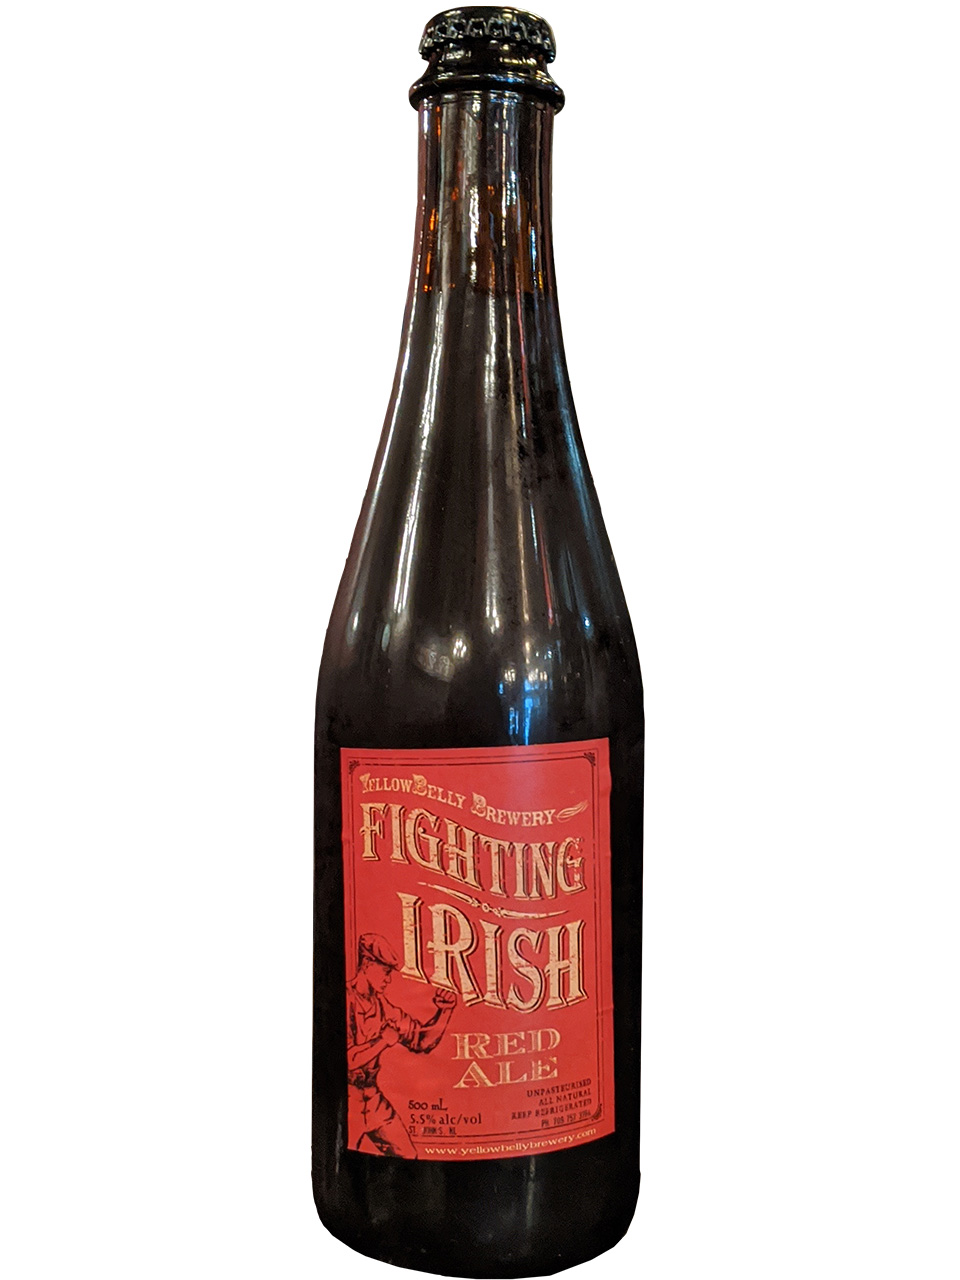 YellowBelly Fighting Irish Red Ale 500ml Bottle